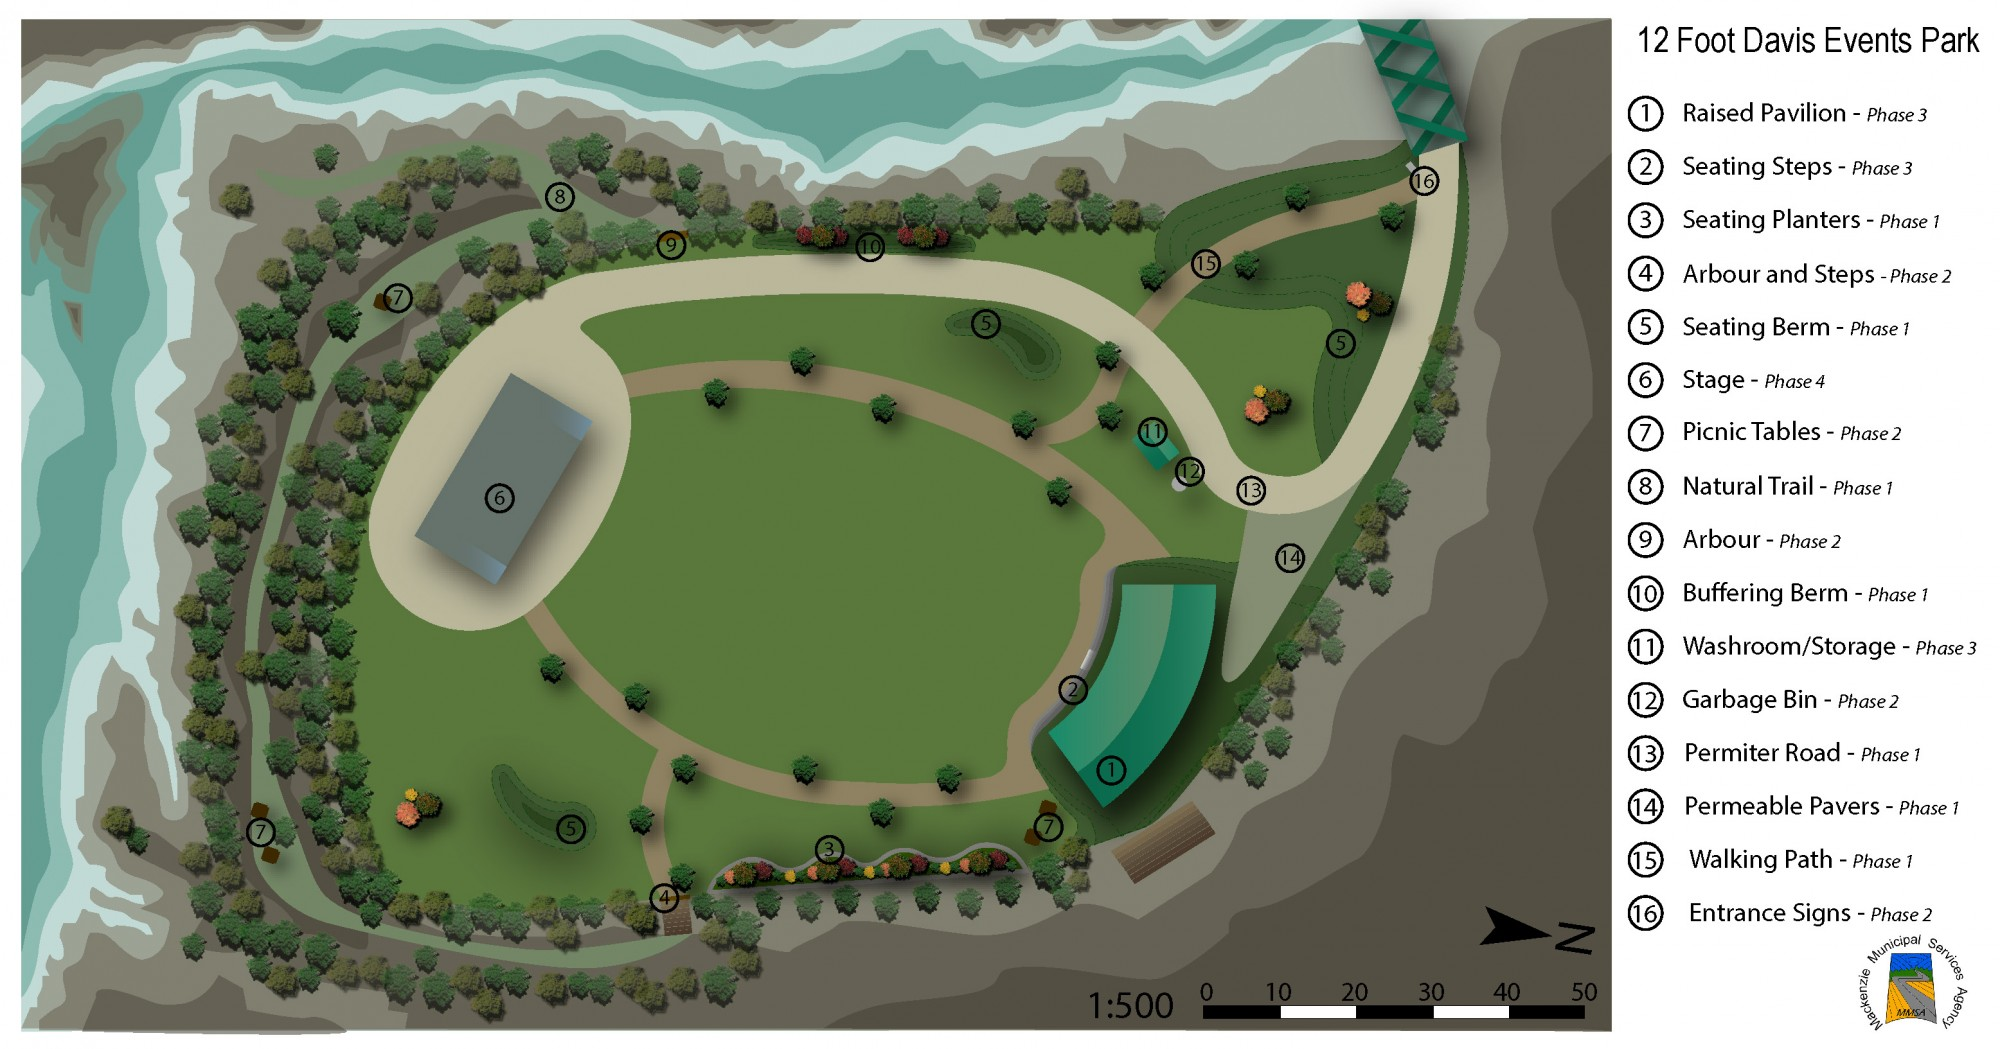 Pages from 12 Foot Davis Events Park FINAL DESIGN and BUDGET